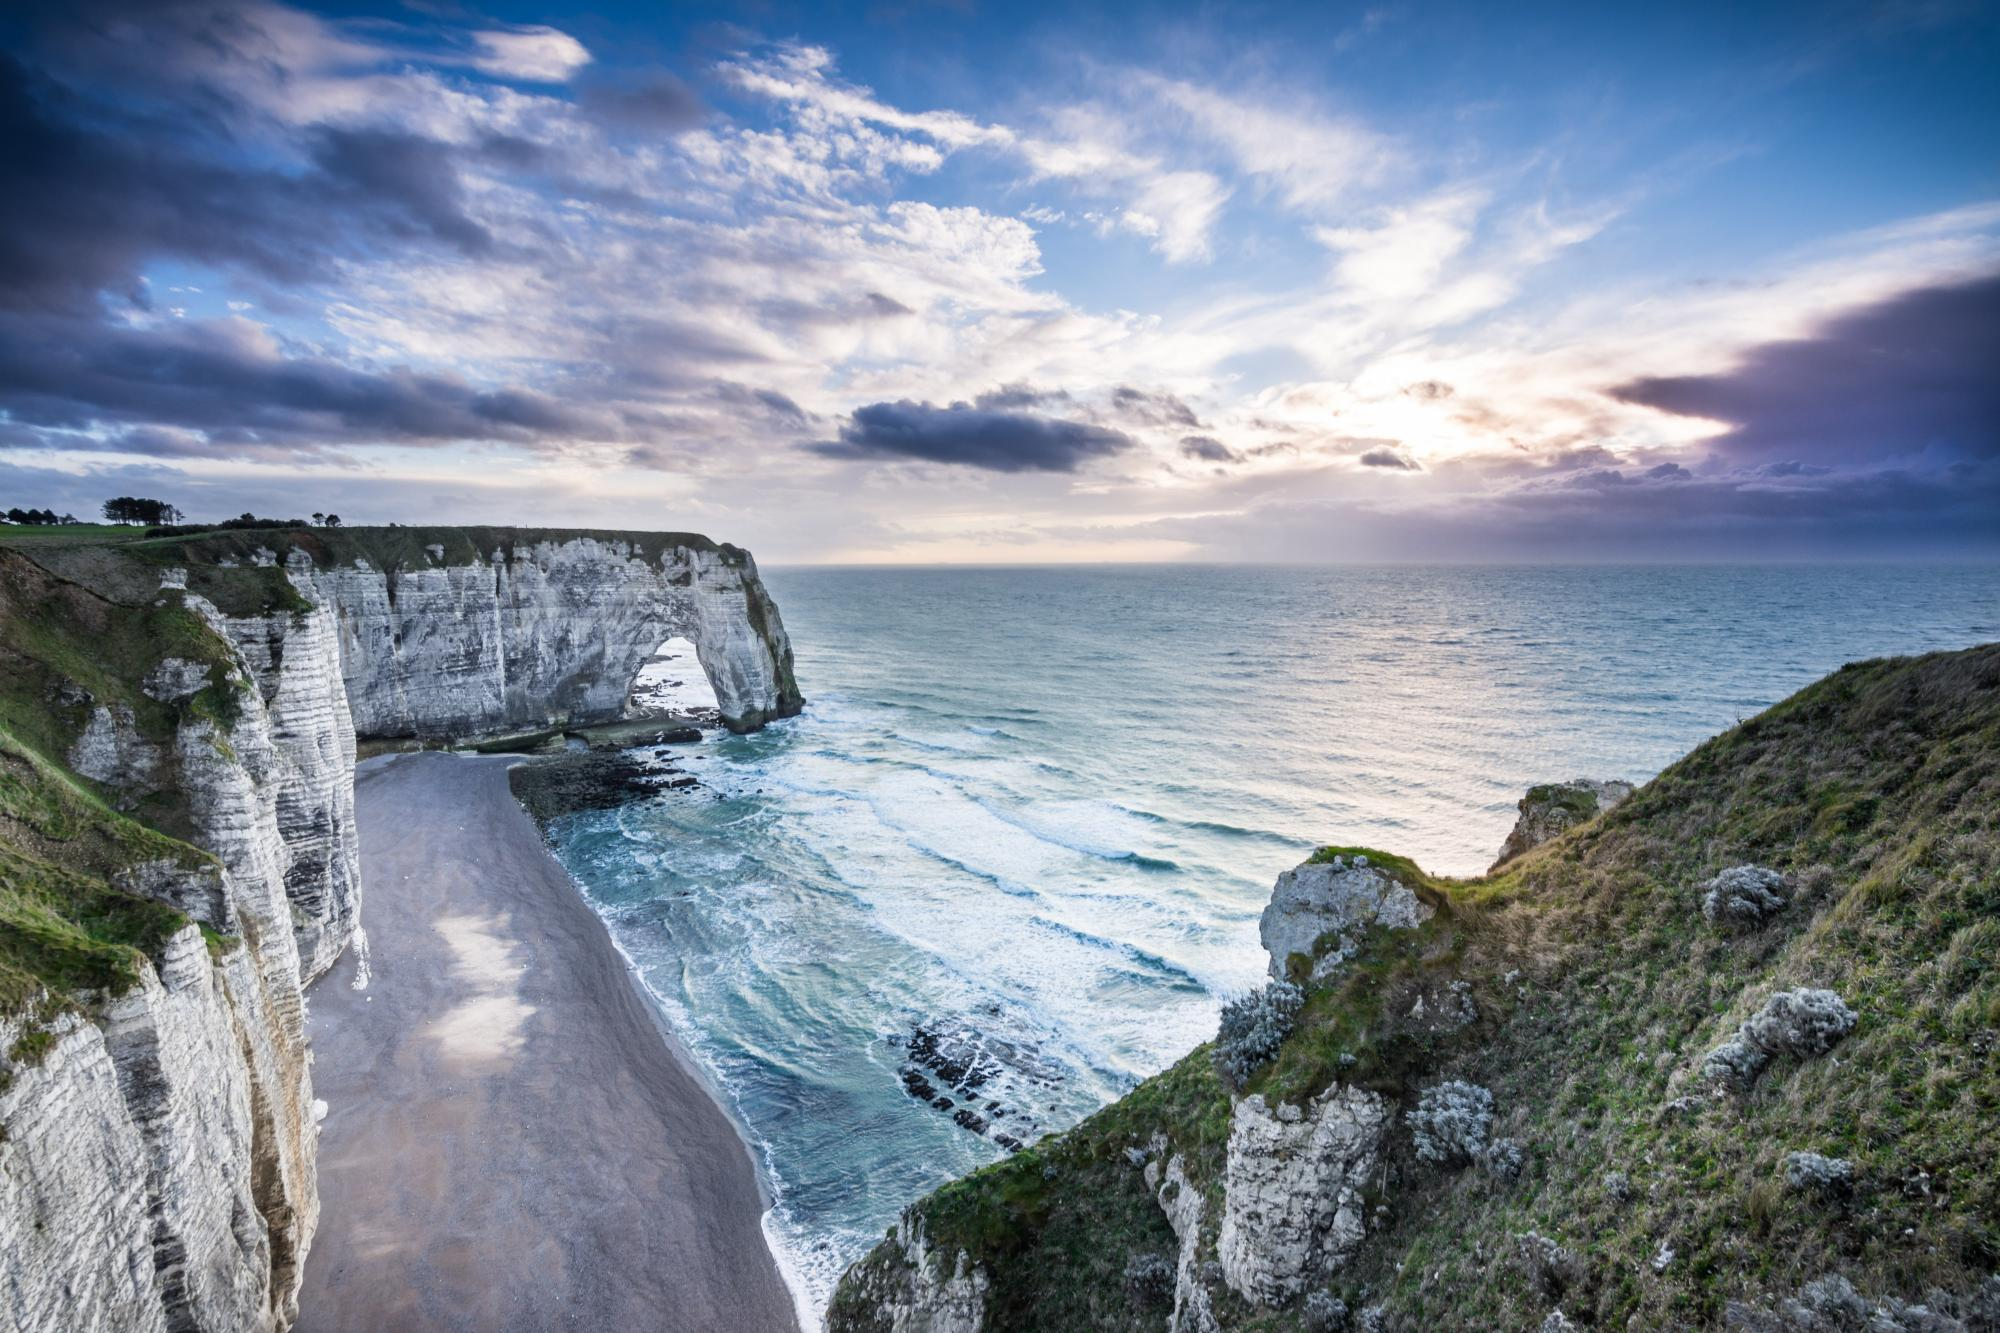 Discover Normandy - Vacation package : France Coast to Coast  - Land of France, travel agency in France